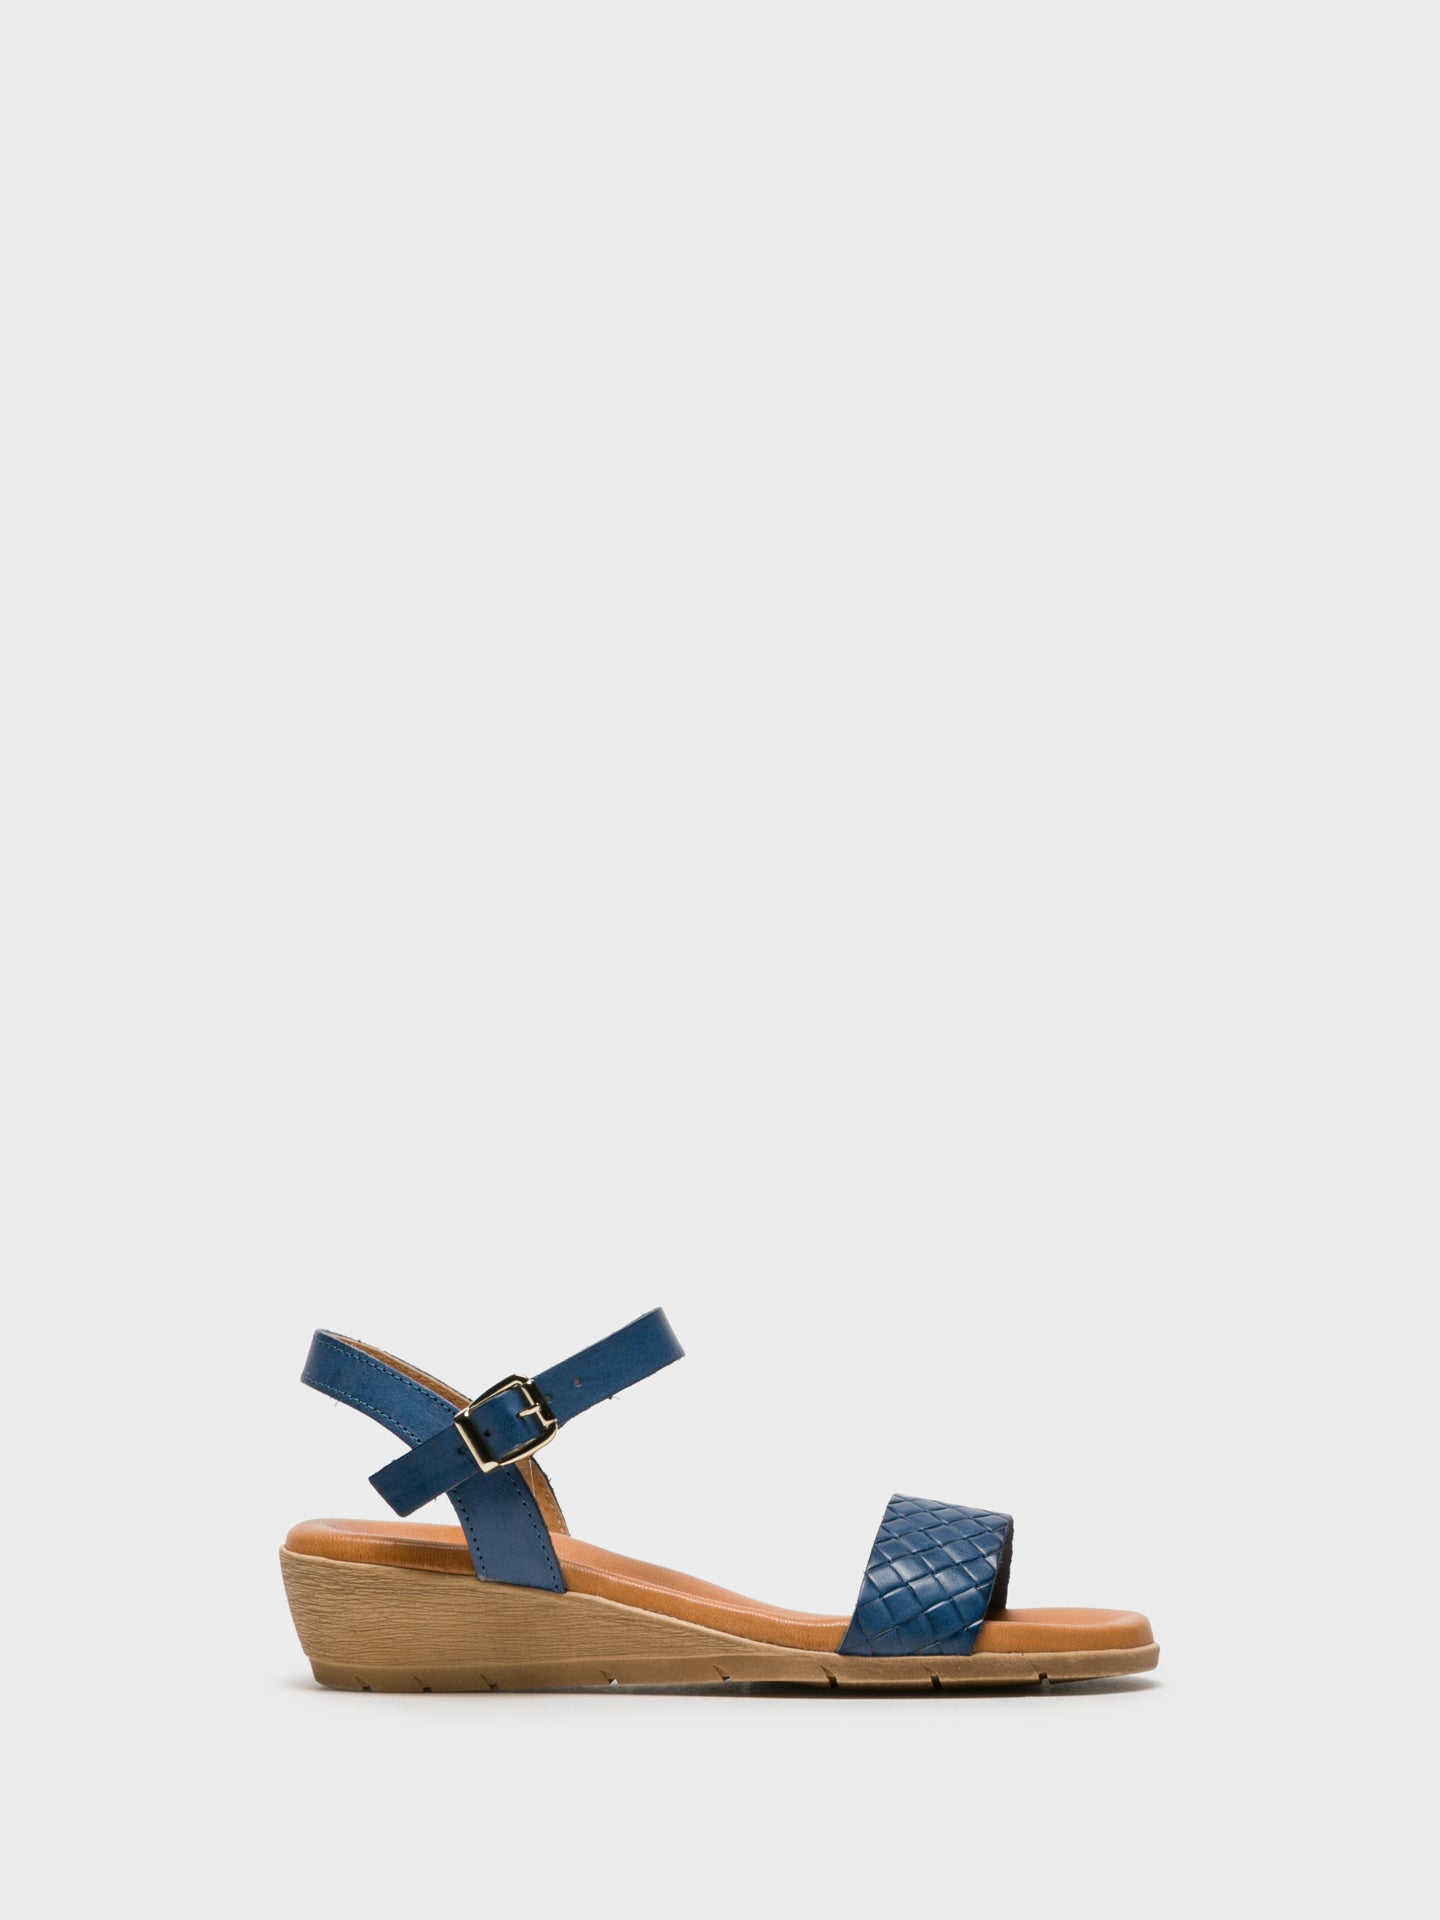 Sotoalto Blue Sling-Back Sandals